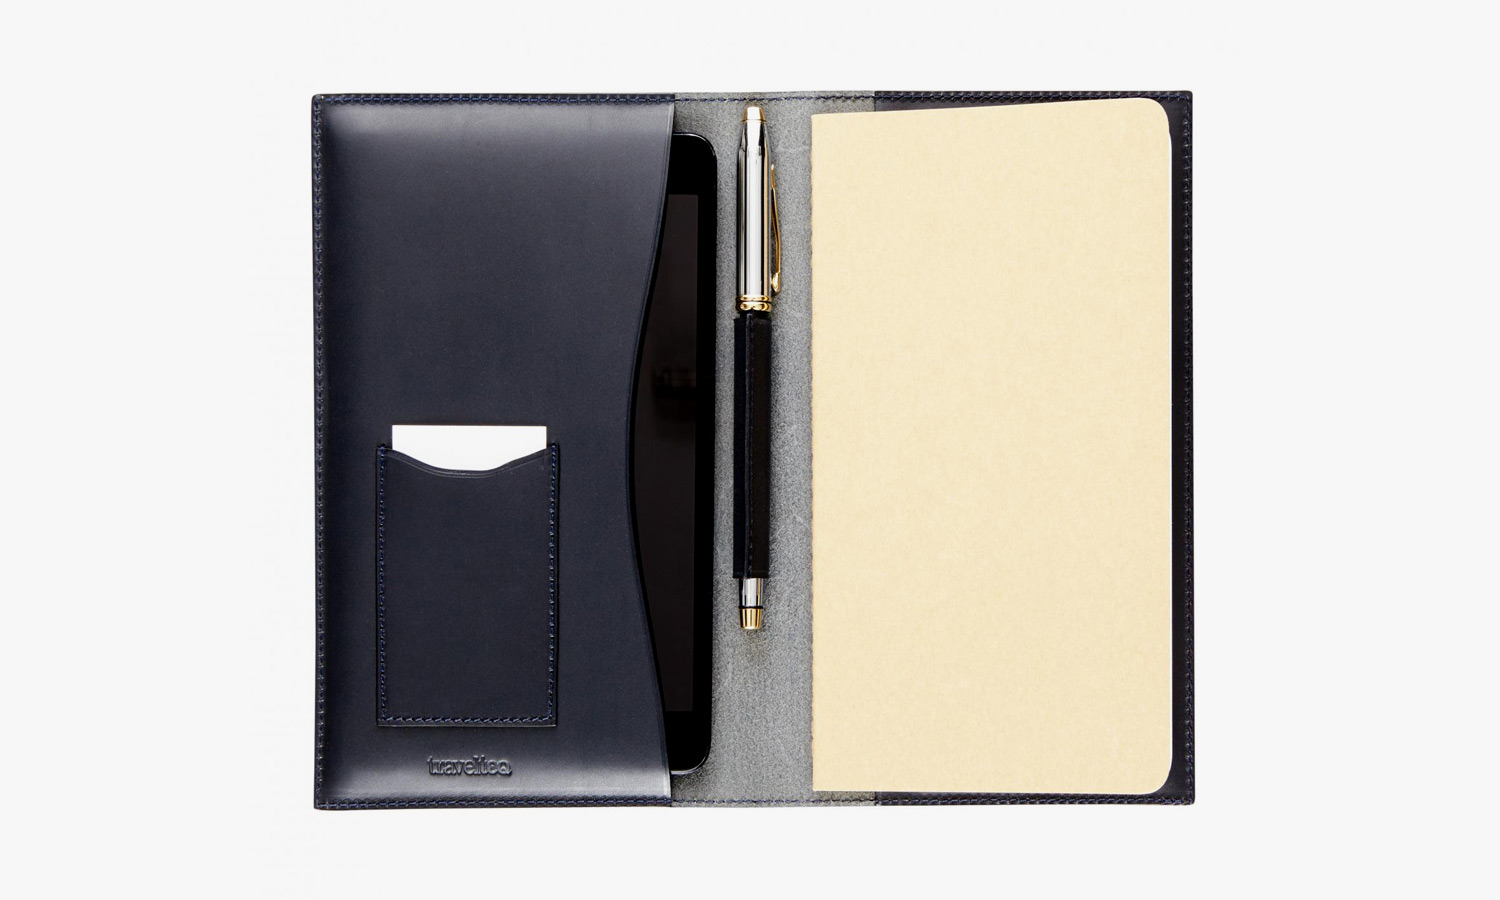 travelteq-tablet-notebook-cover-2014-00